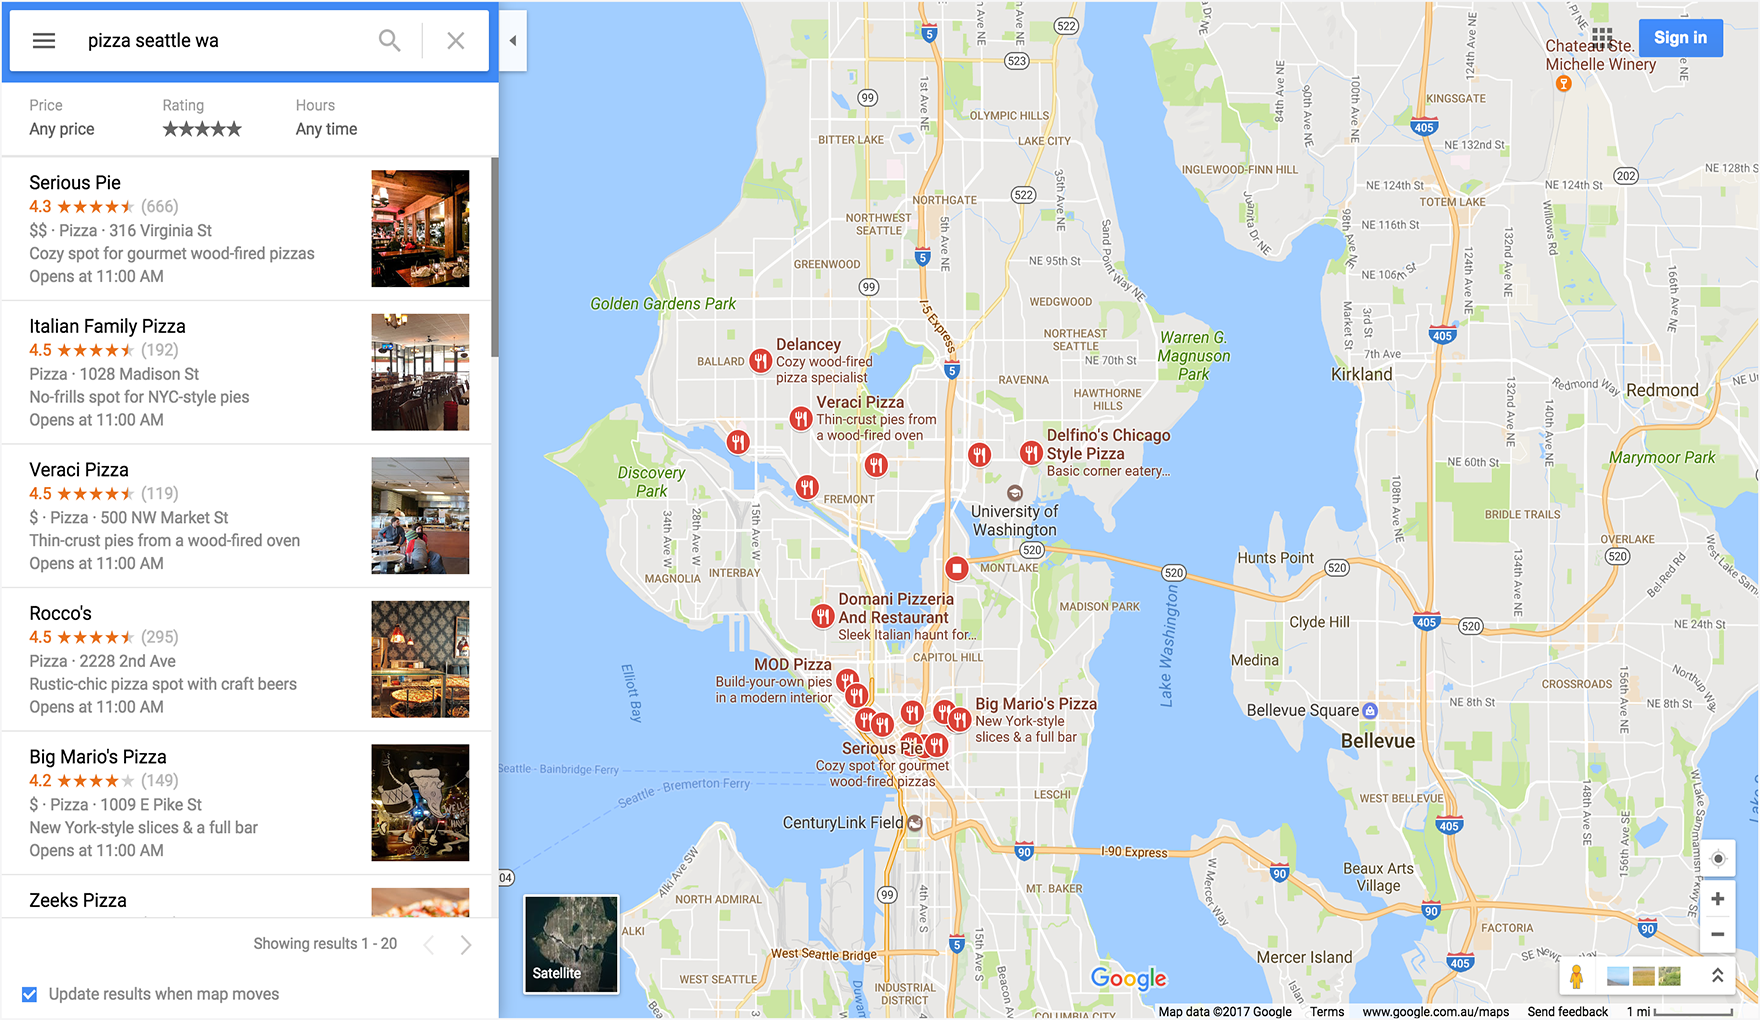 hyperlocal marketing and local SEO